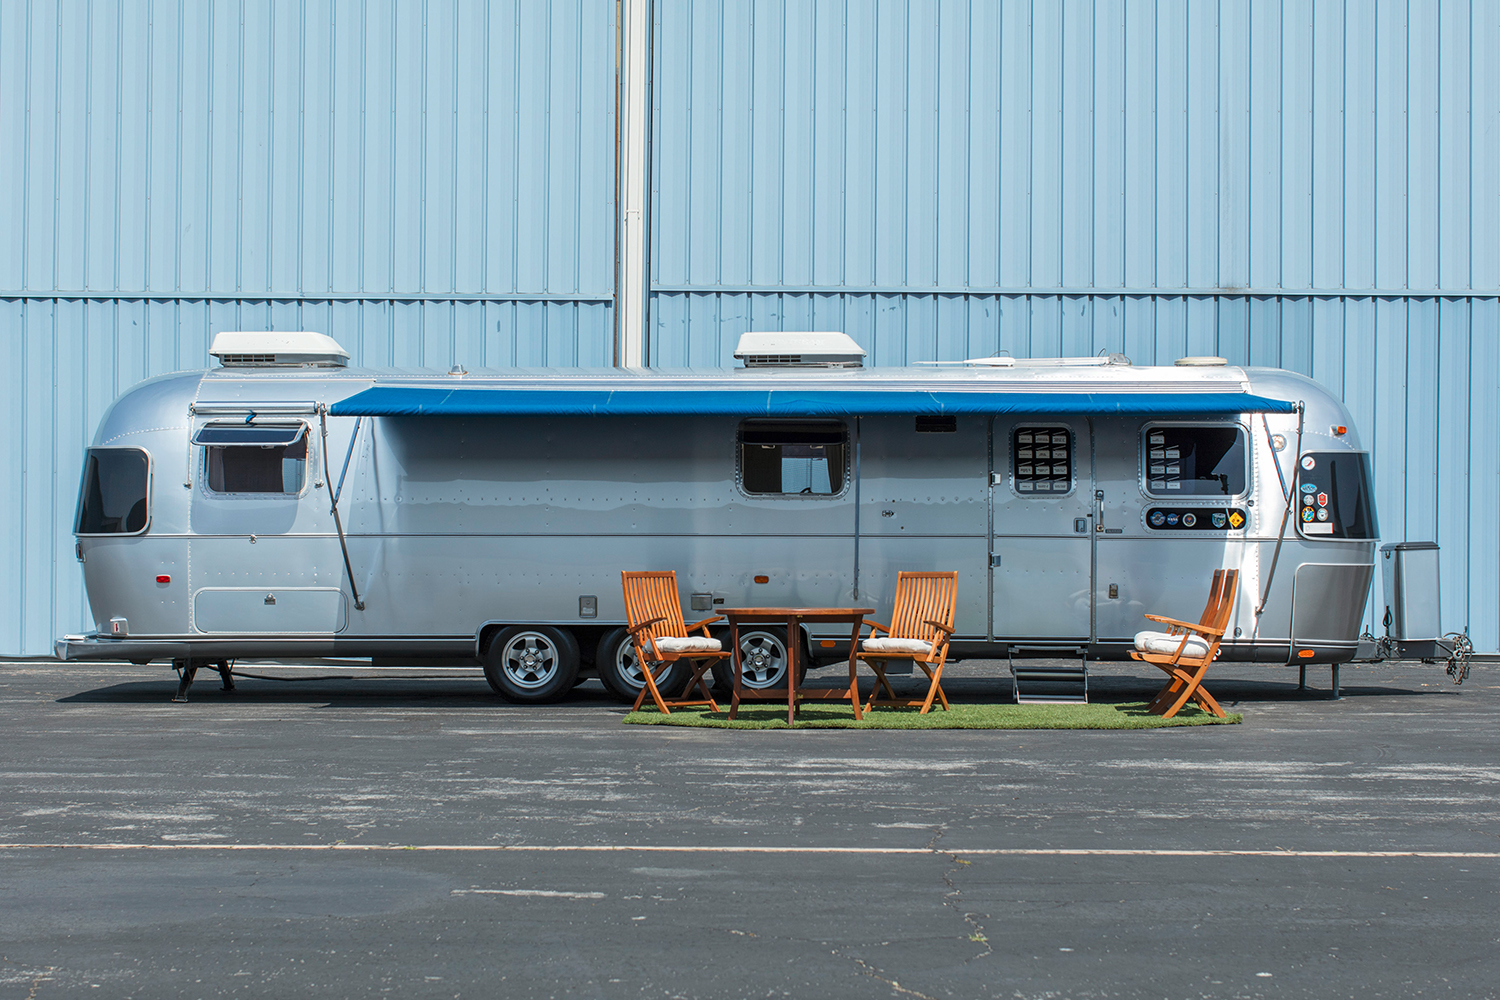 A 1992 Airstream Model 34 Limited Excella Travel Trailer owned by Tom Hanks. It's set to sell at the Bonhams Quail Lodge Auction as part of Monterey Car Week.